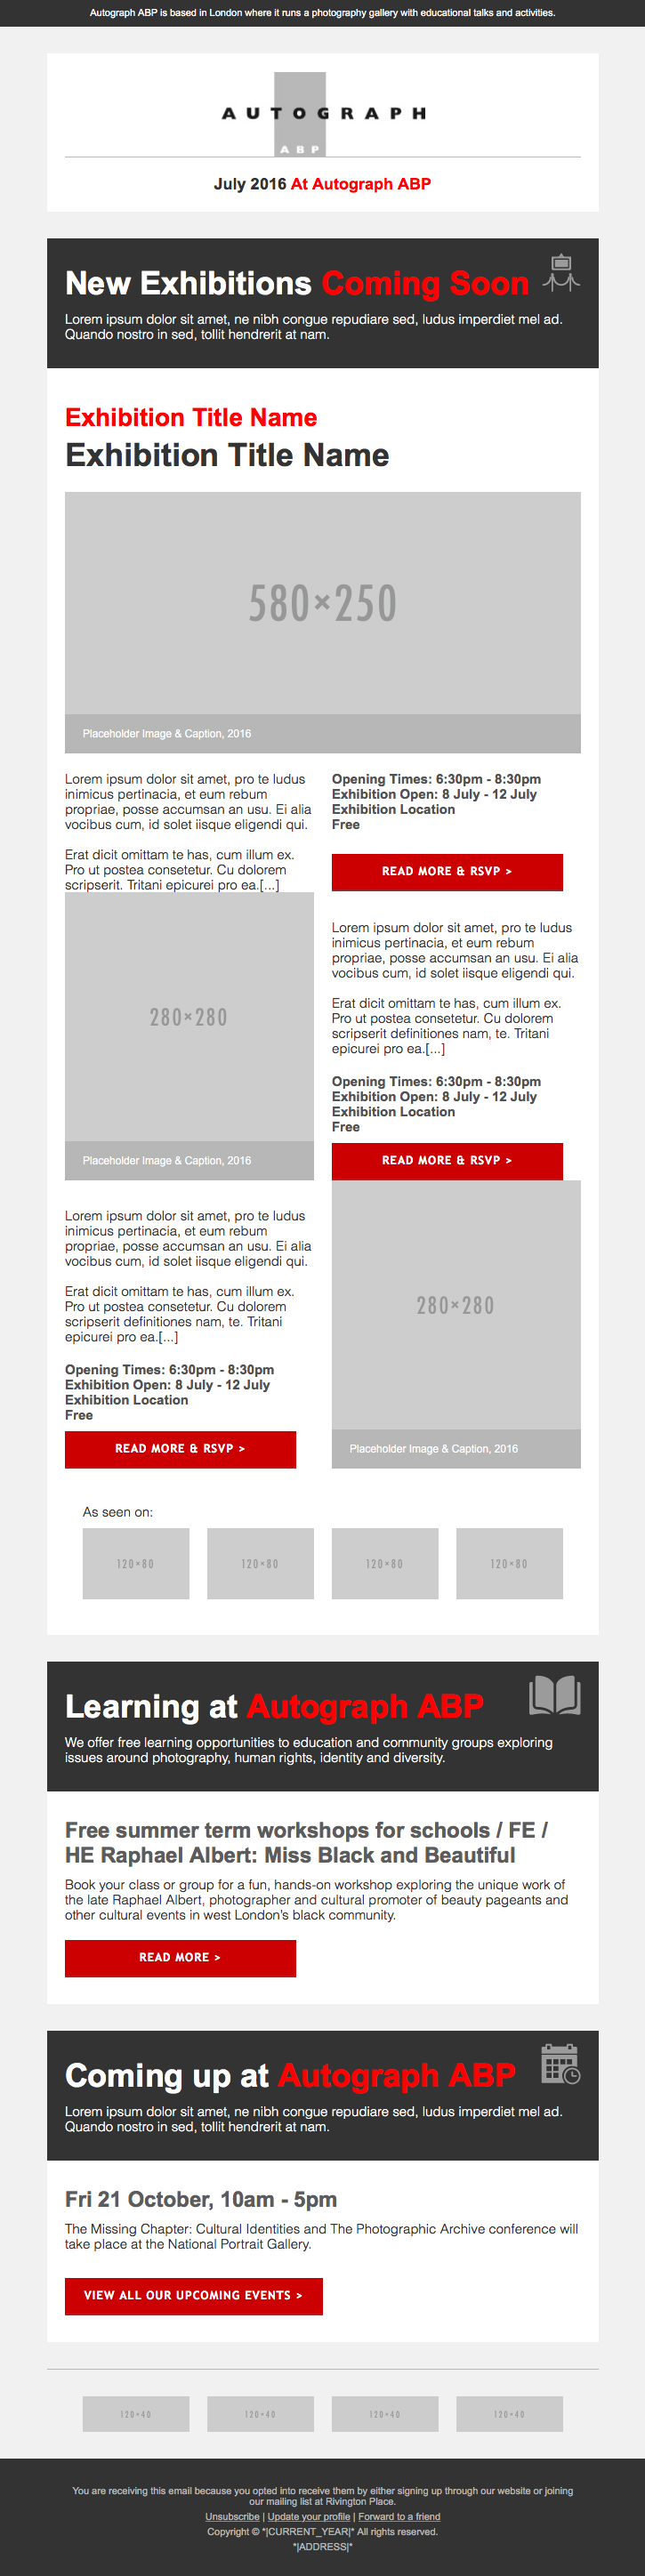 Cute Beautiful Html Email Templates Pictures Inspiration ...